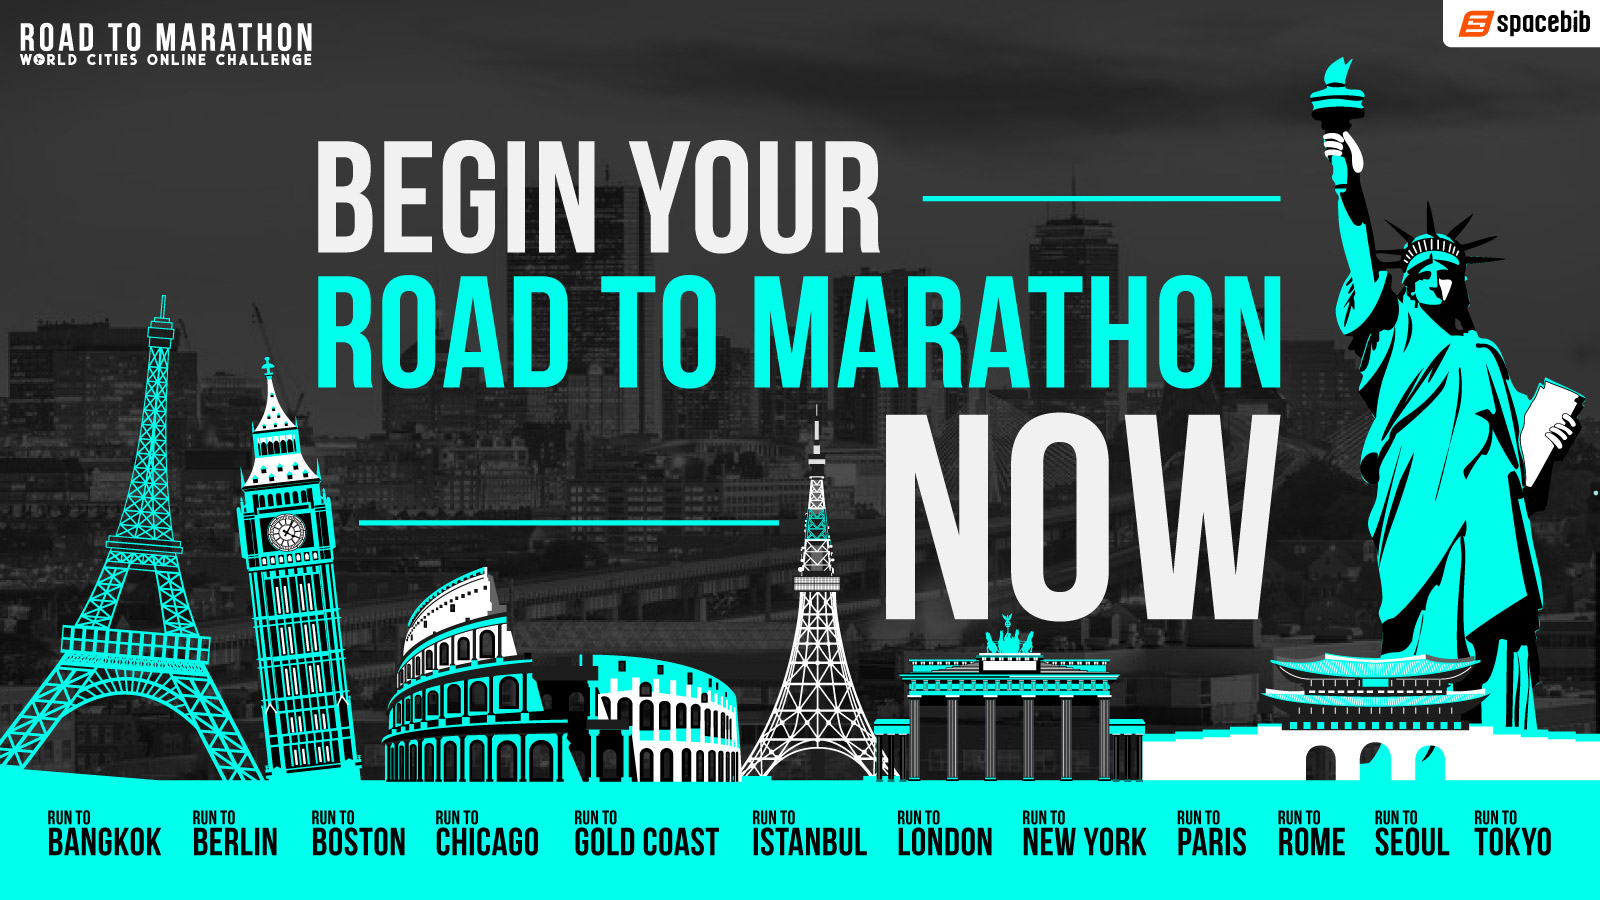 World Cities Online Challenge: Road To Marathon 2020